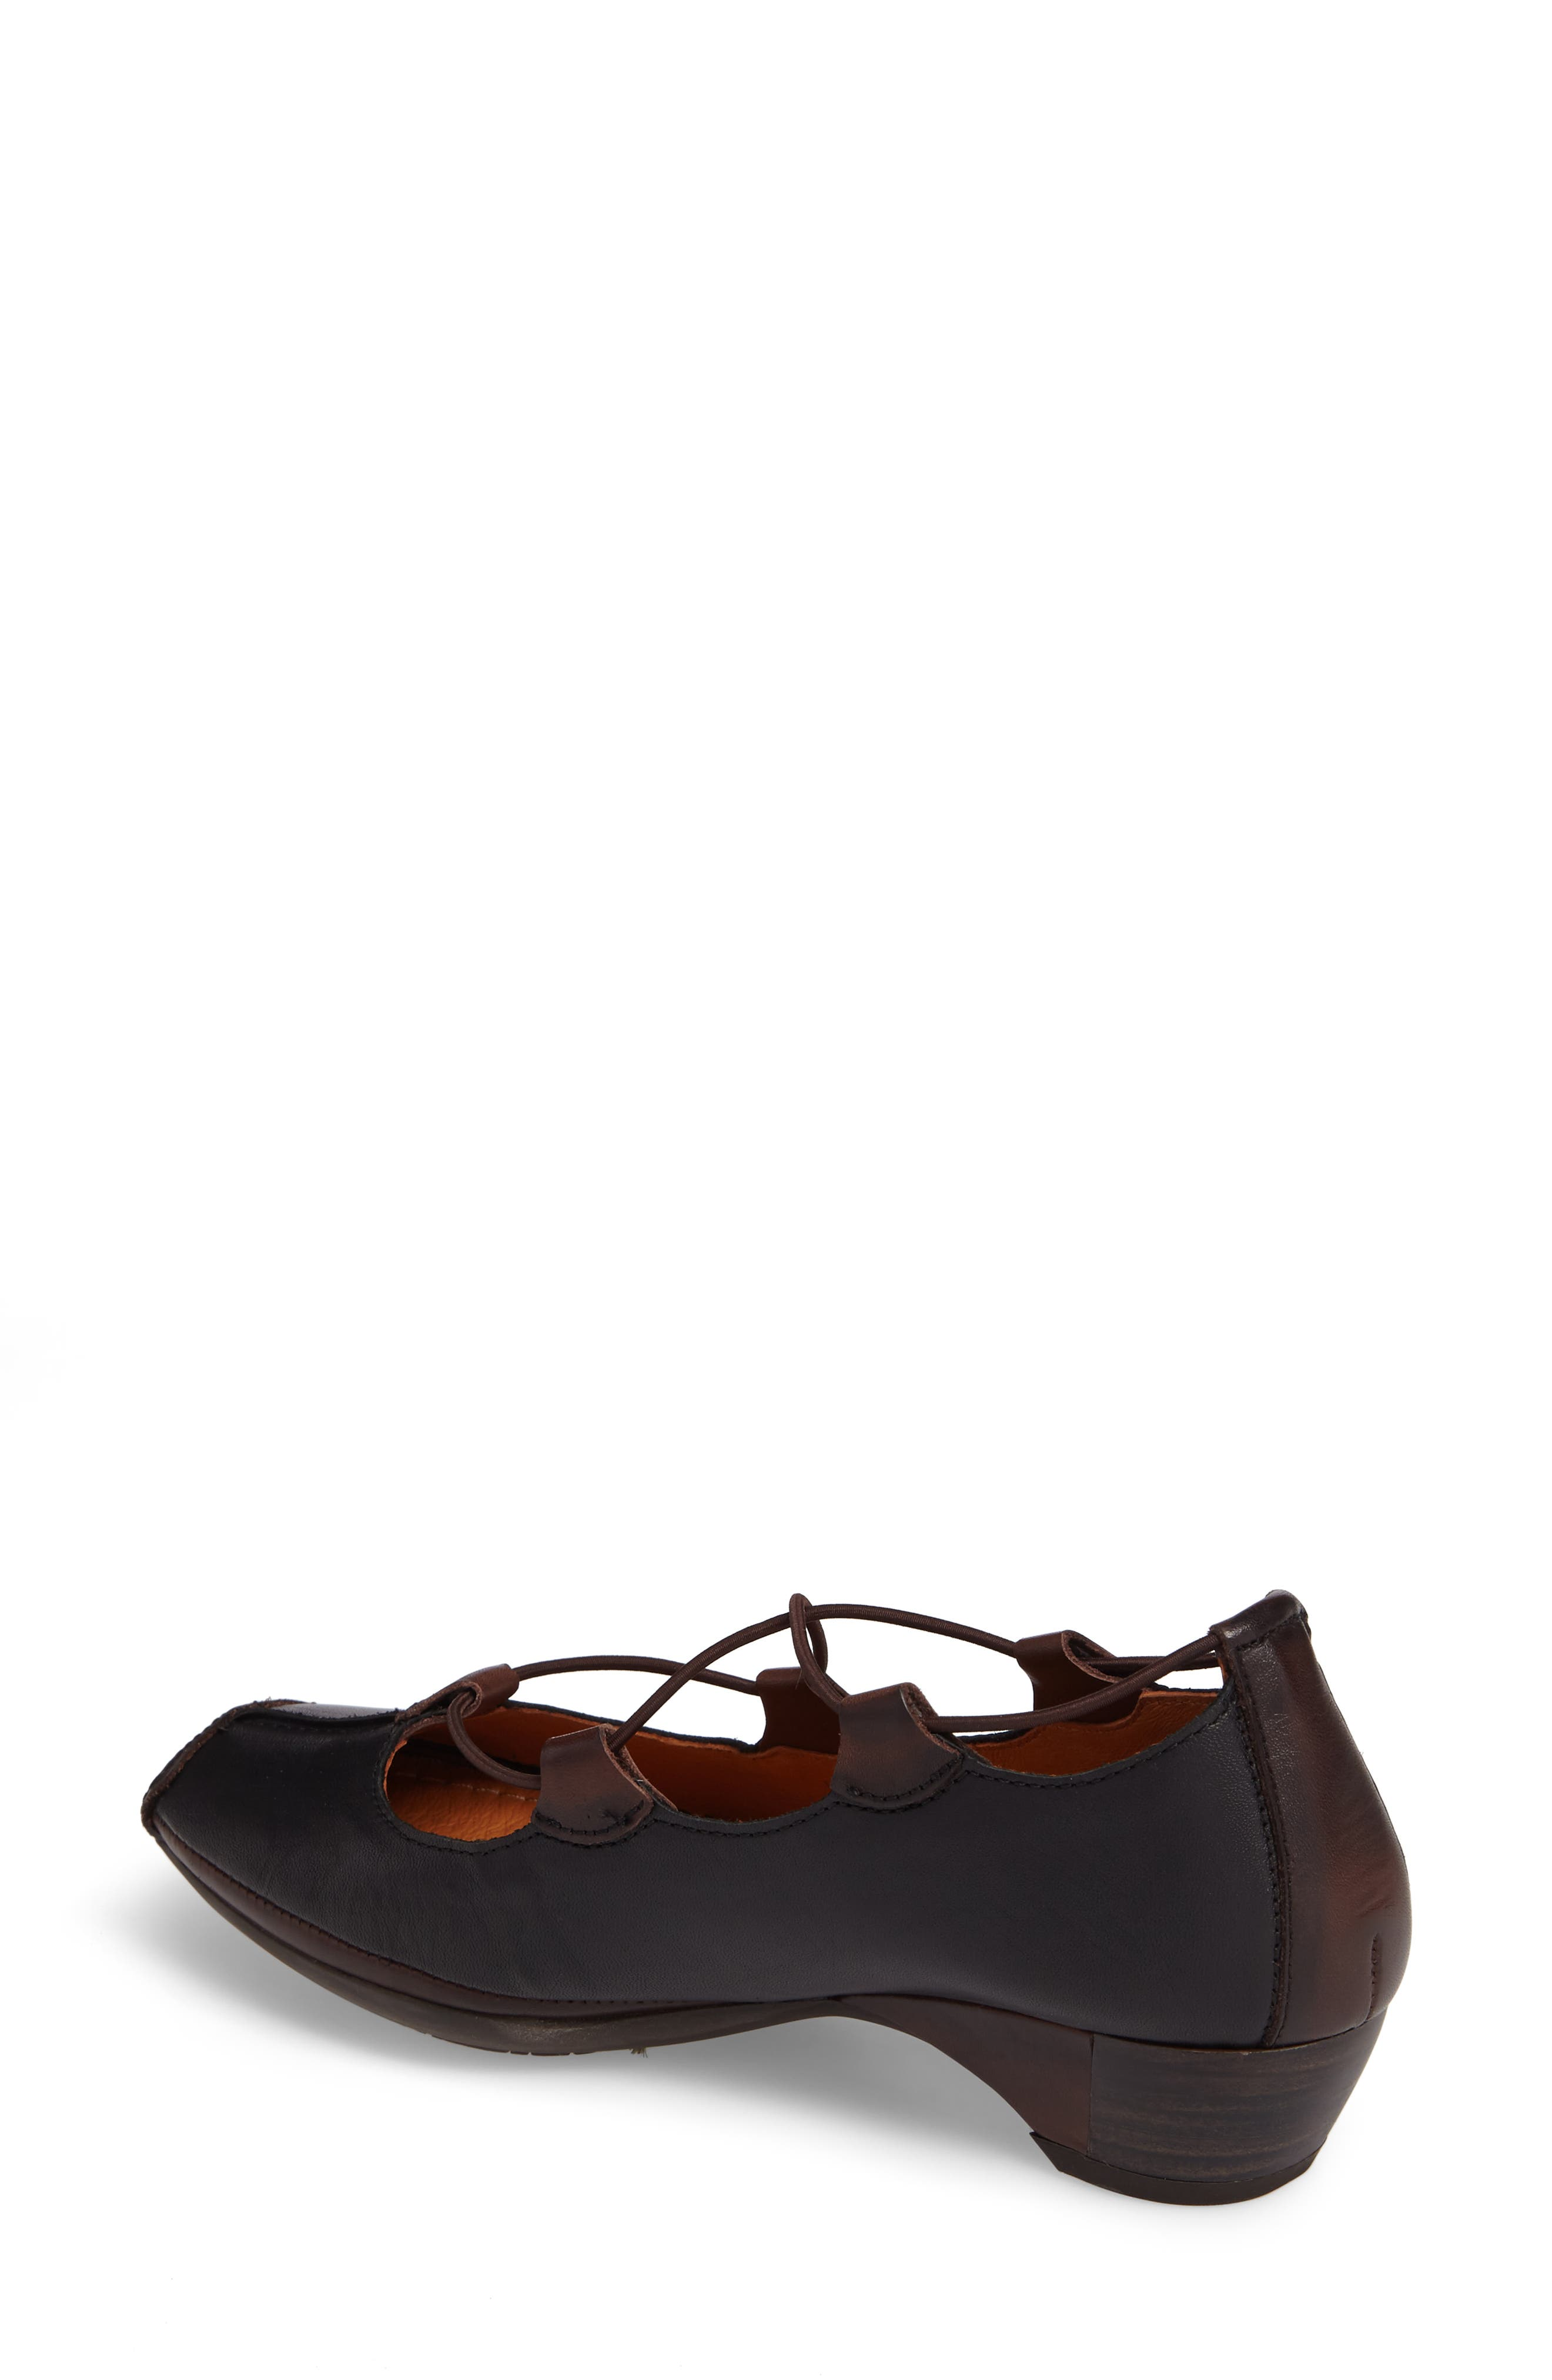 Gandia Lace-Up Pump,                             Alternate thumbnail 2, color,                             BLACK OLMO LEATHER